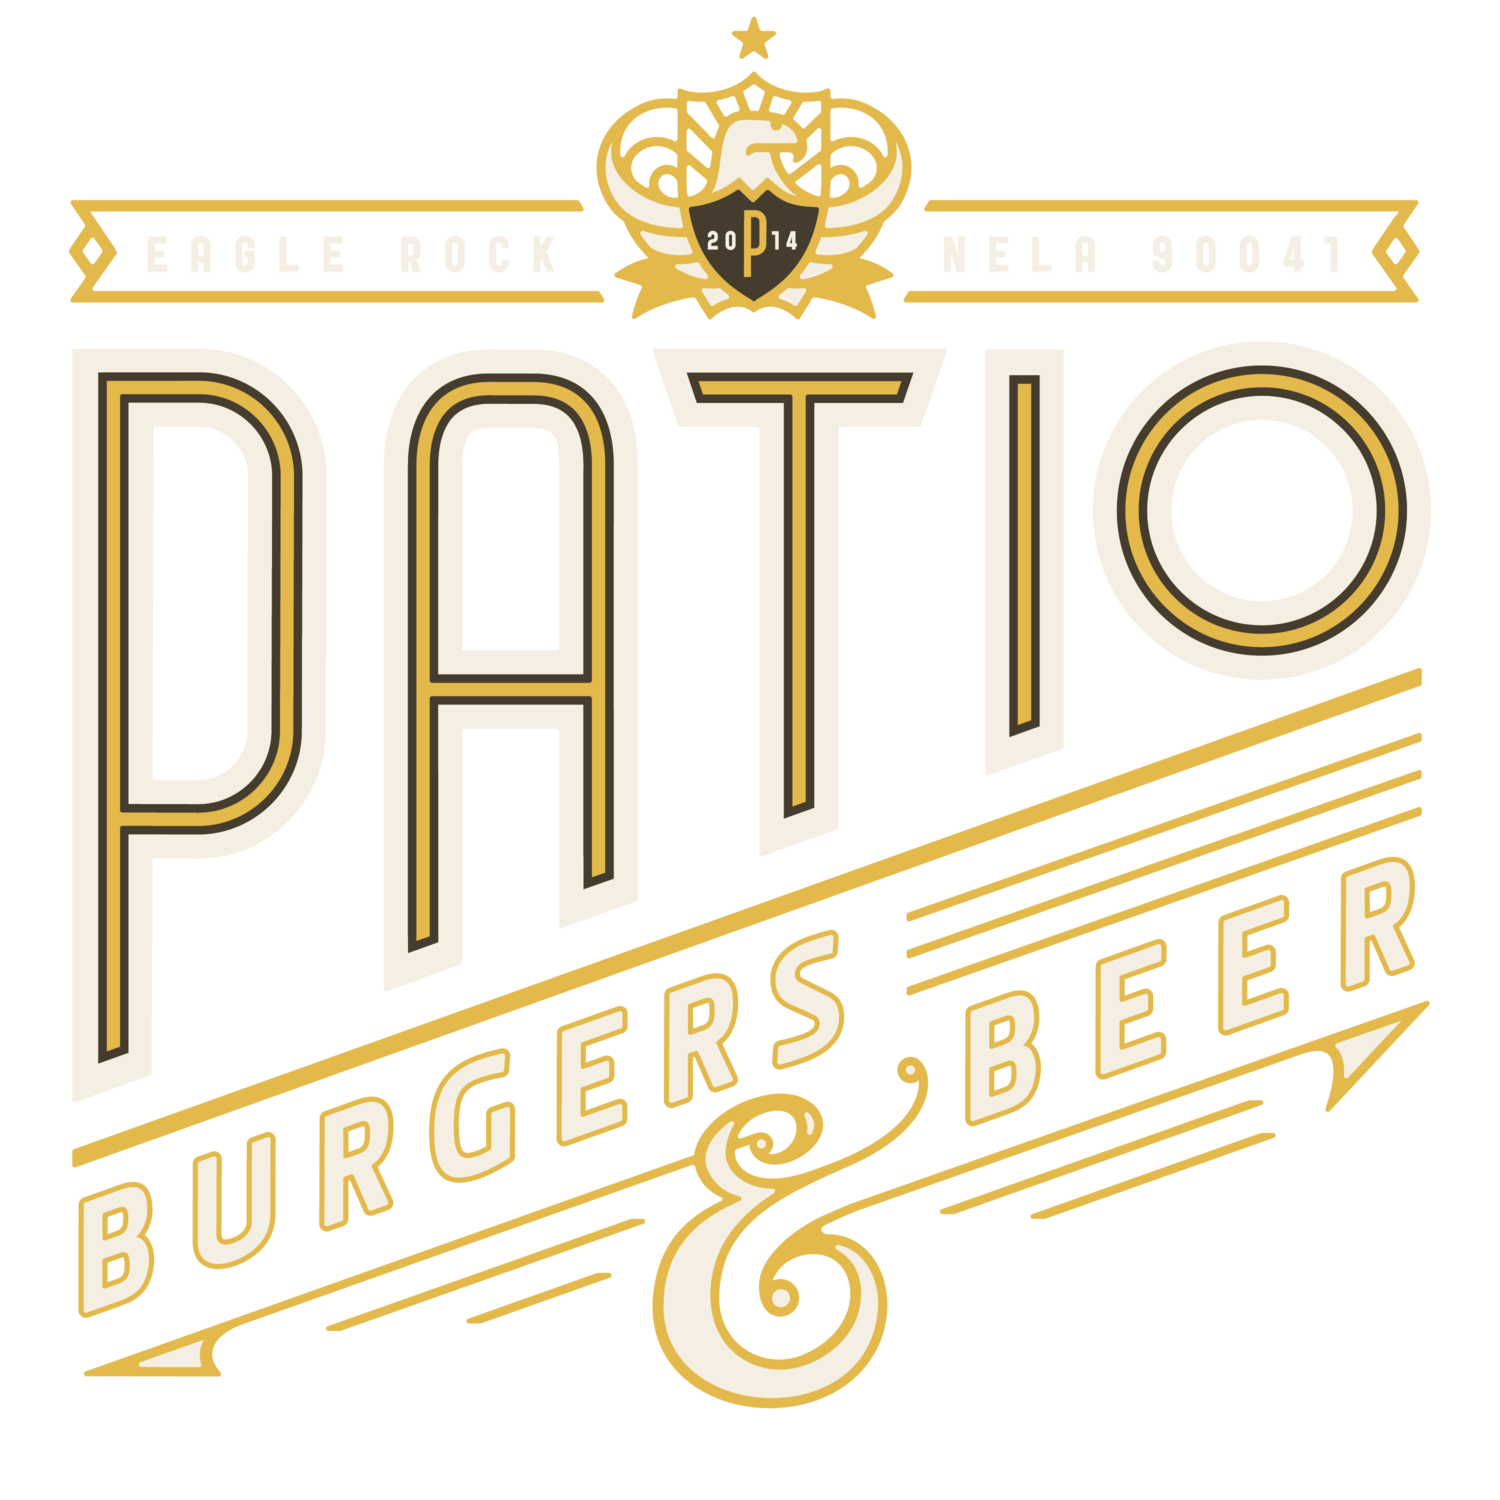 Patio Burgers and Beer